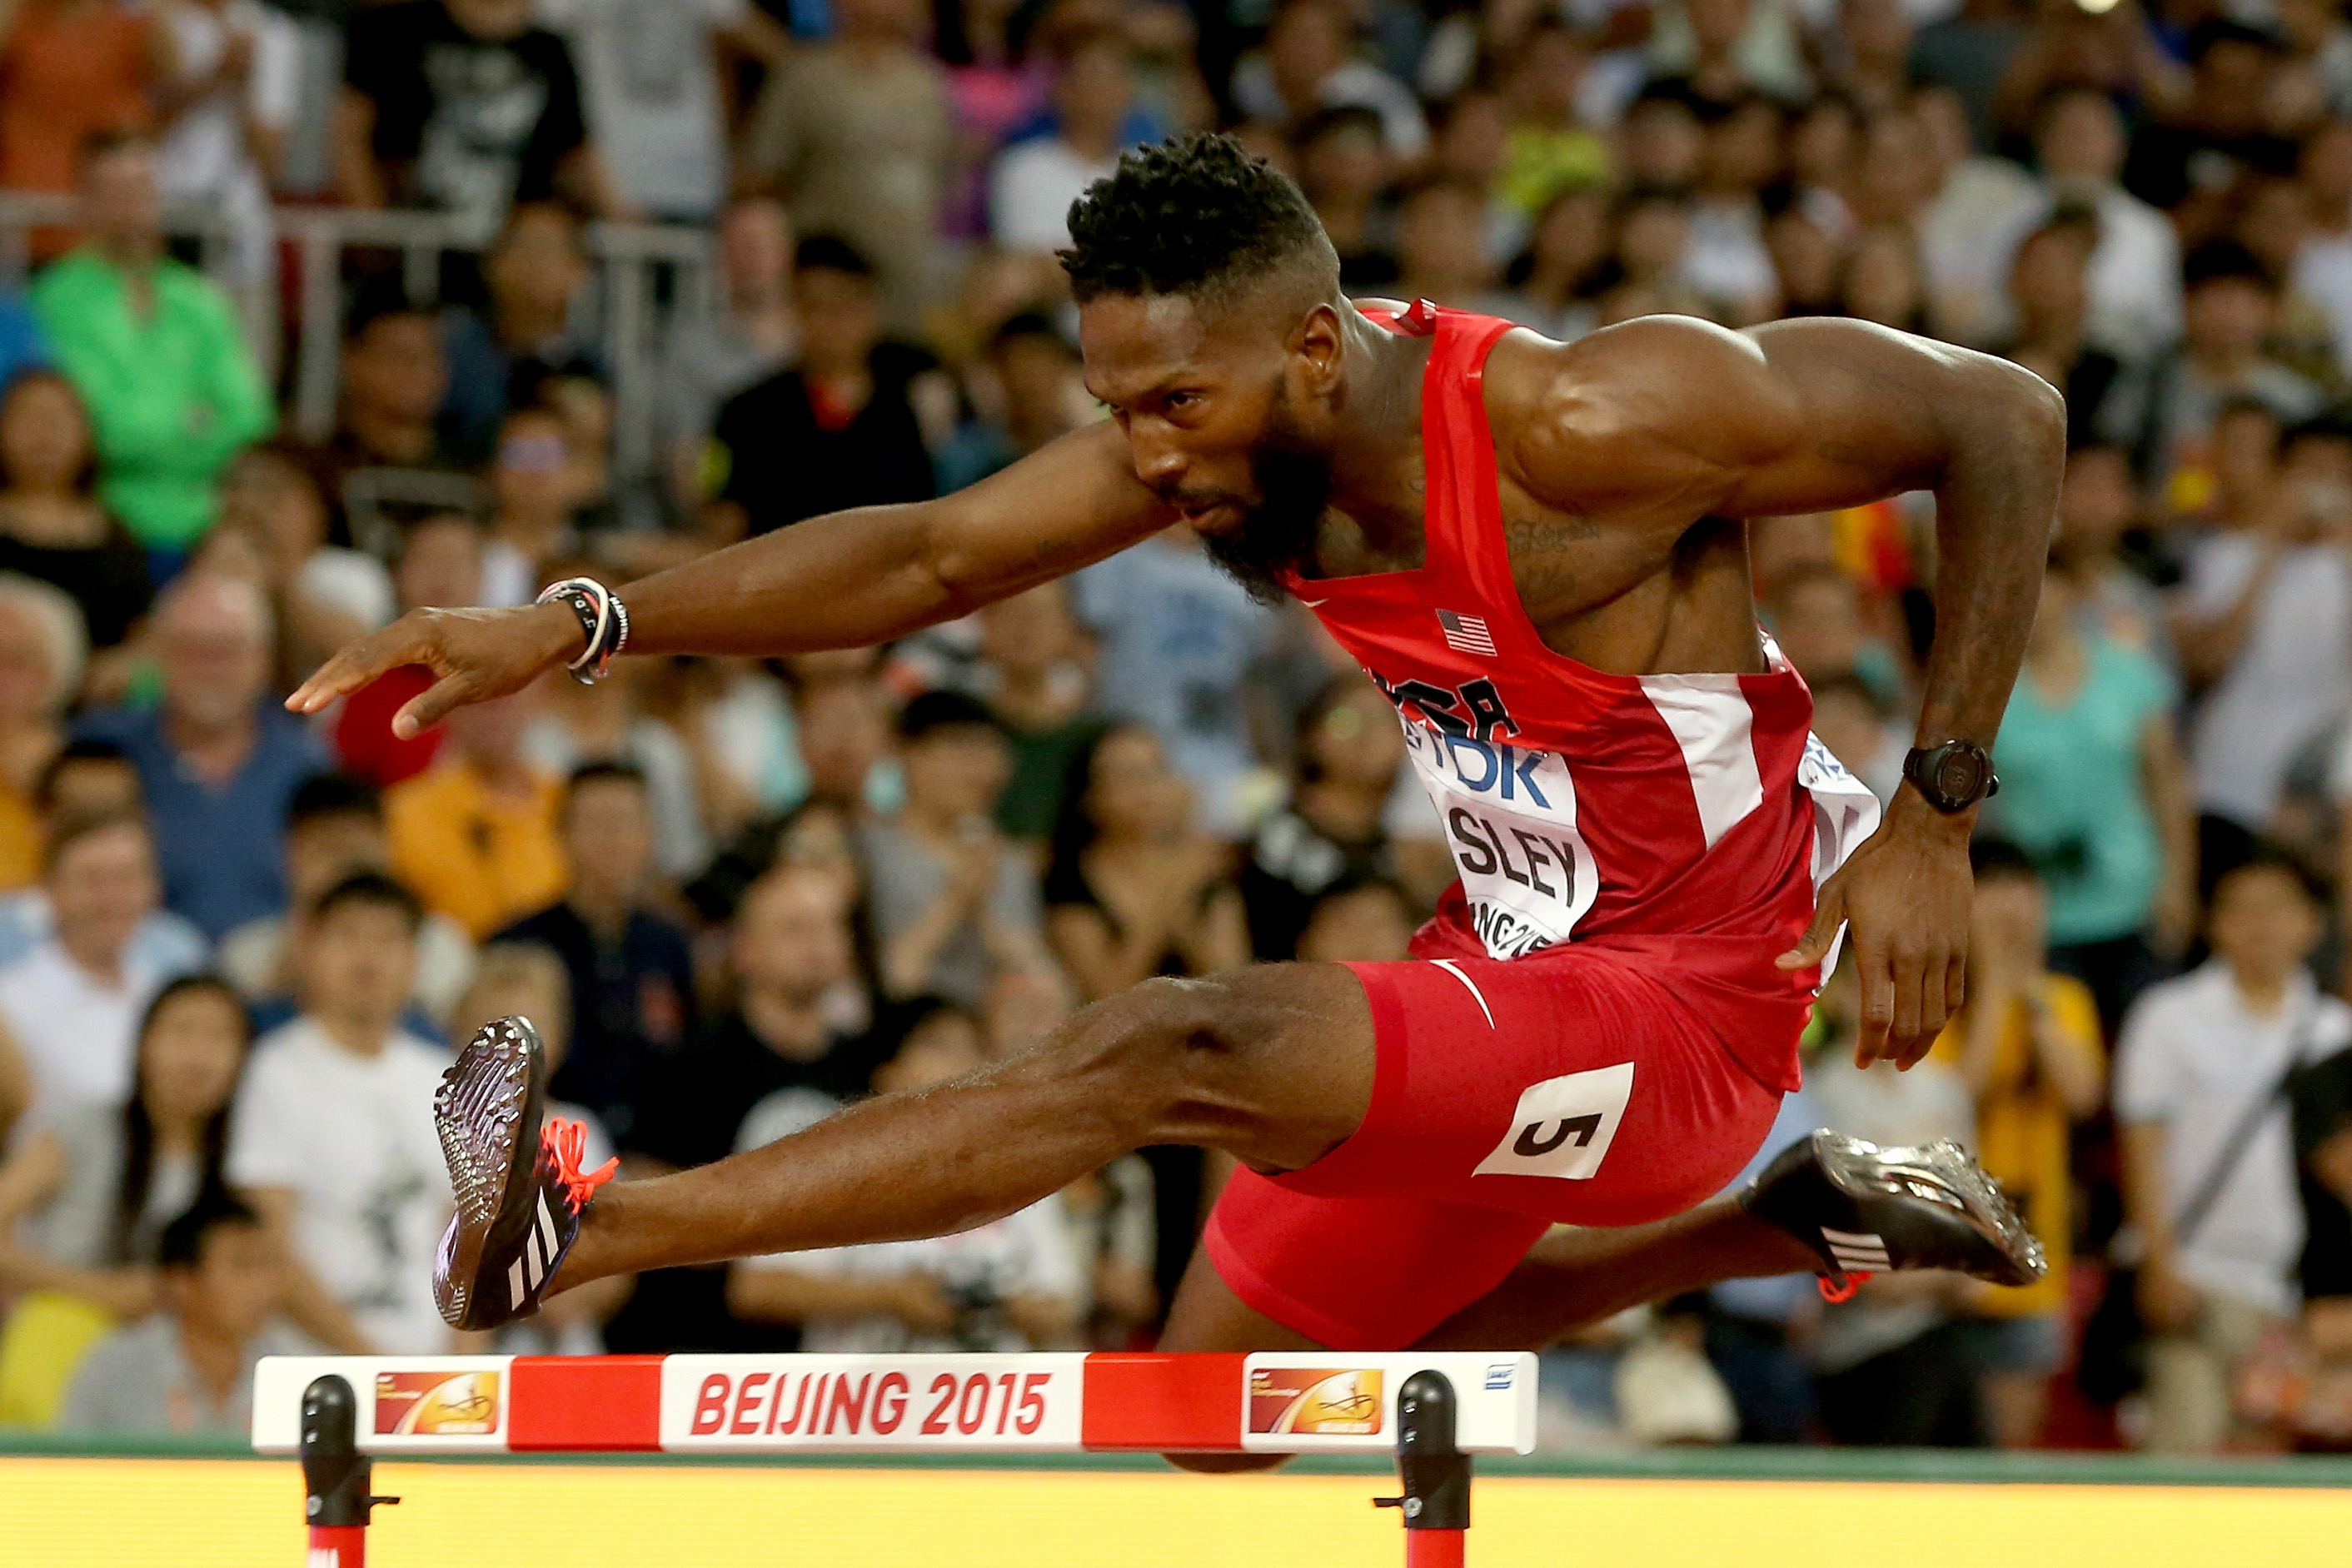 Michael Tinsley of the United States competes in the Men's 400 meters hurdles semi-final during day two of the 15th IAAF World Athletics Championships Beijing 2015 at Beijing National Stadium on August 23, 2015 in Beijing, China.